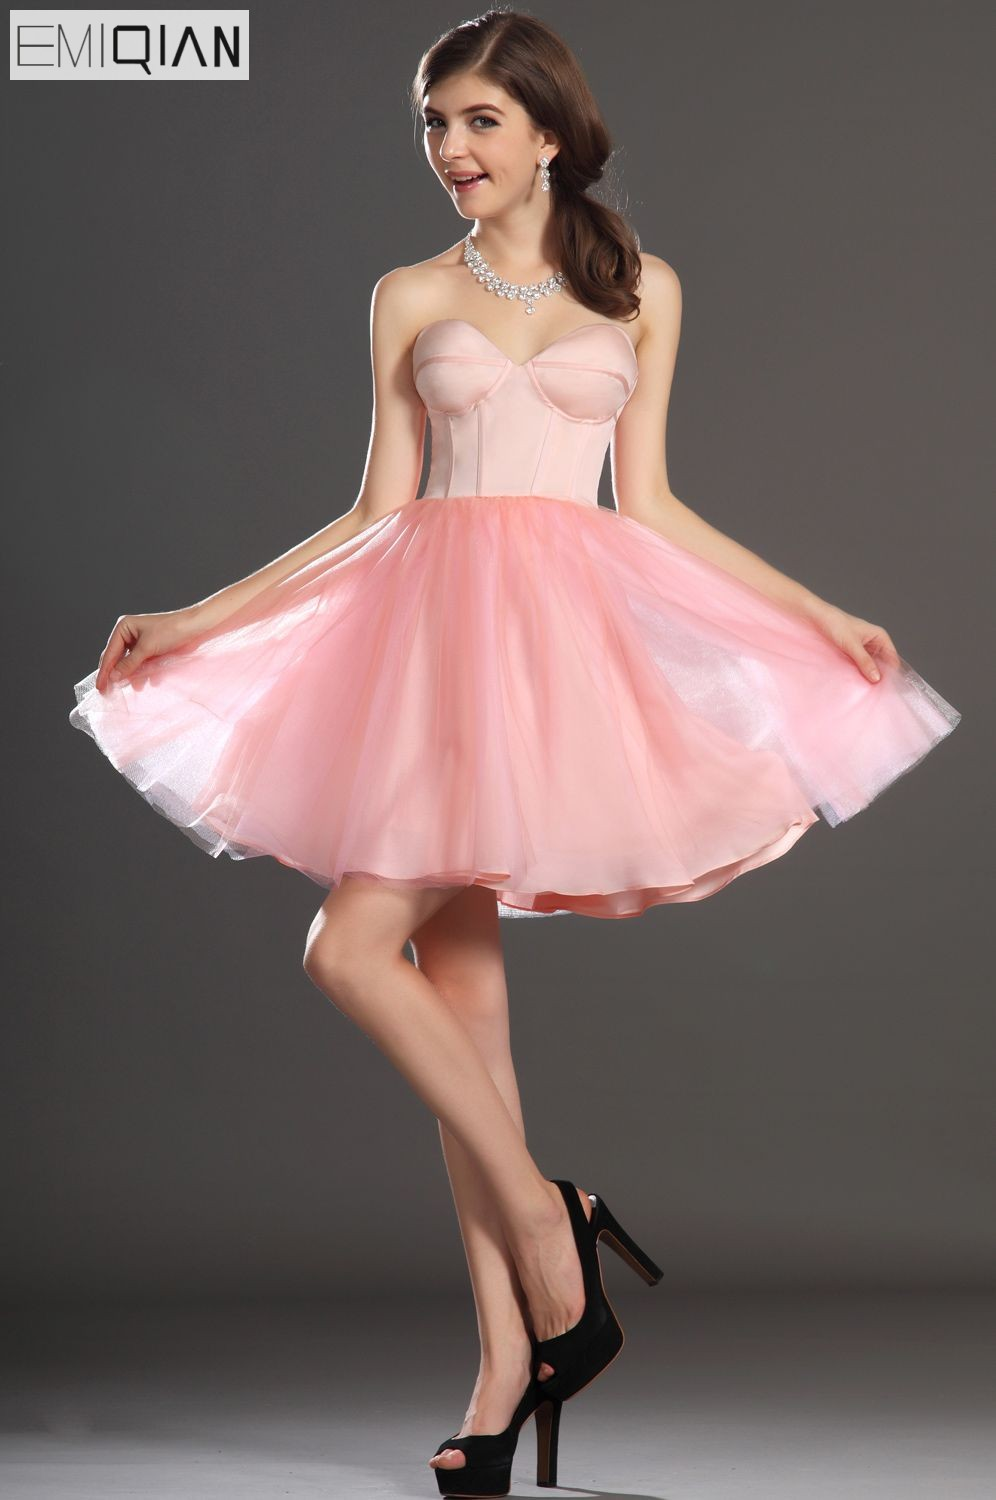 Freeshipping New Fantastic Strapless Sweetheart Short Prom Dress Pink Cocktail Dress